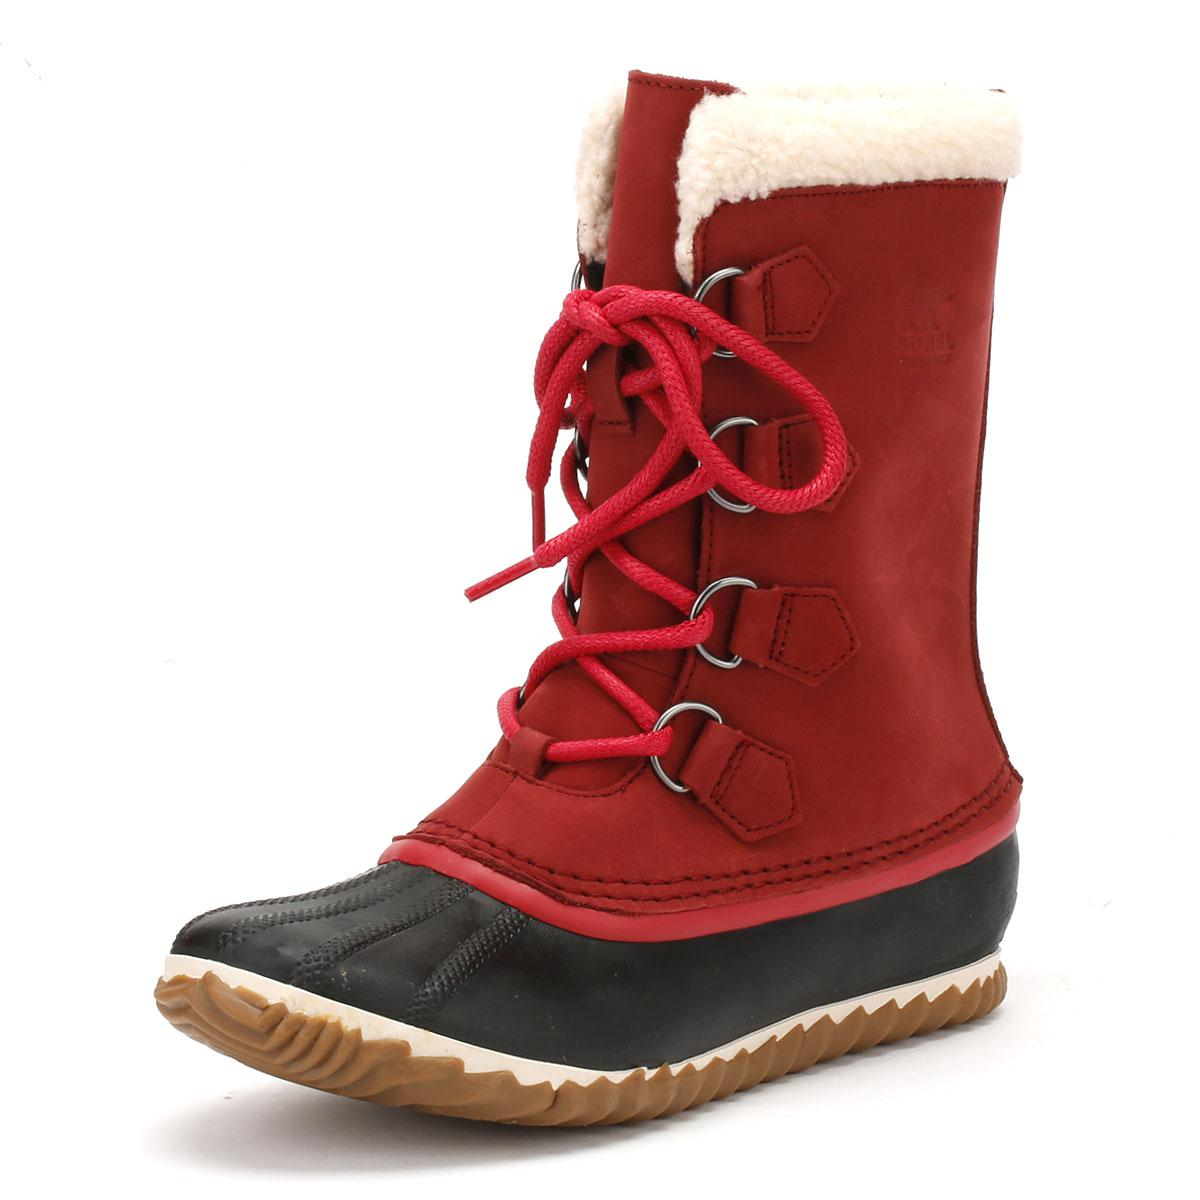 a4f25126c43 Sorel - Womens Red Element   Black Caribou Slim Boots Women s Snow Boots In  Red -. View fullscreen